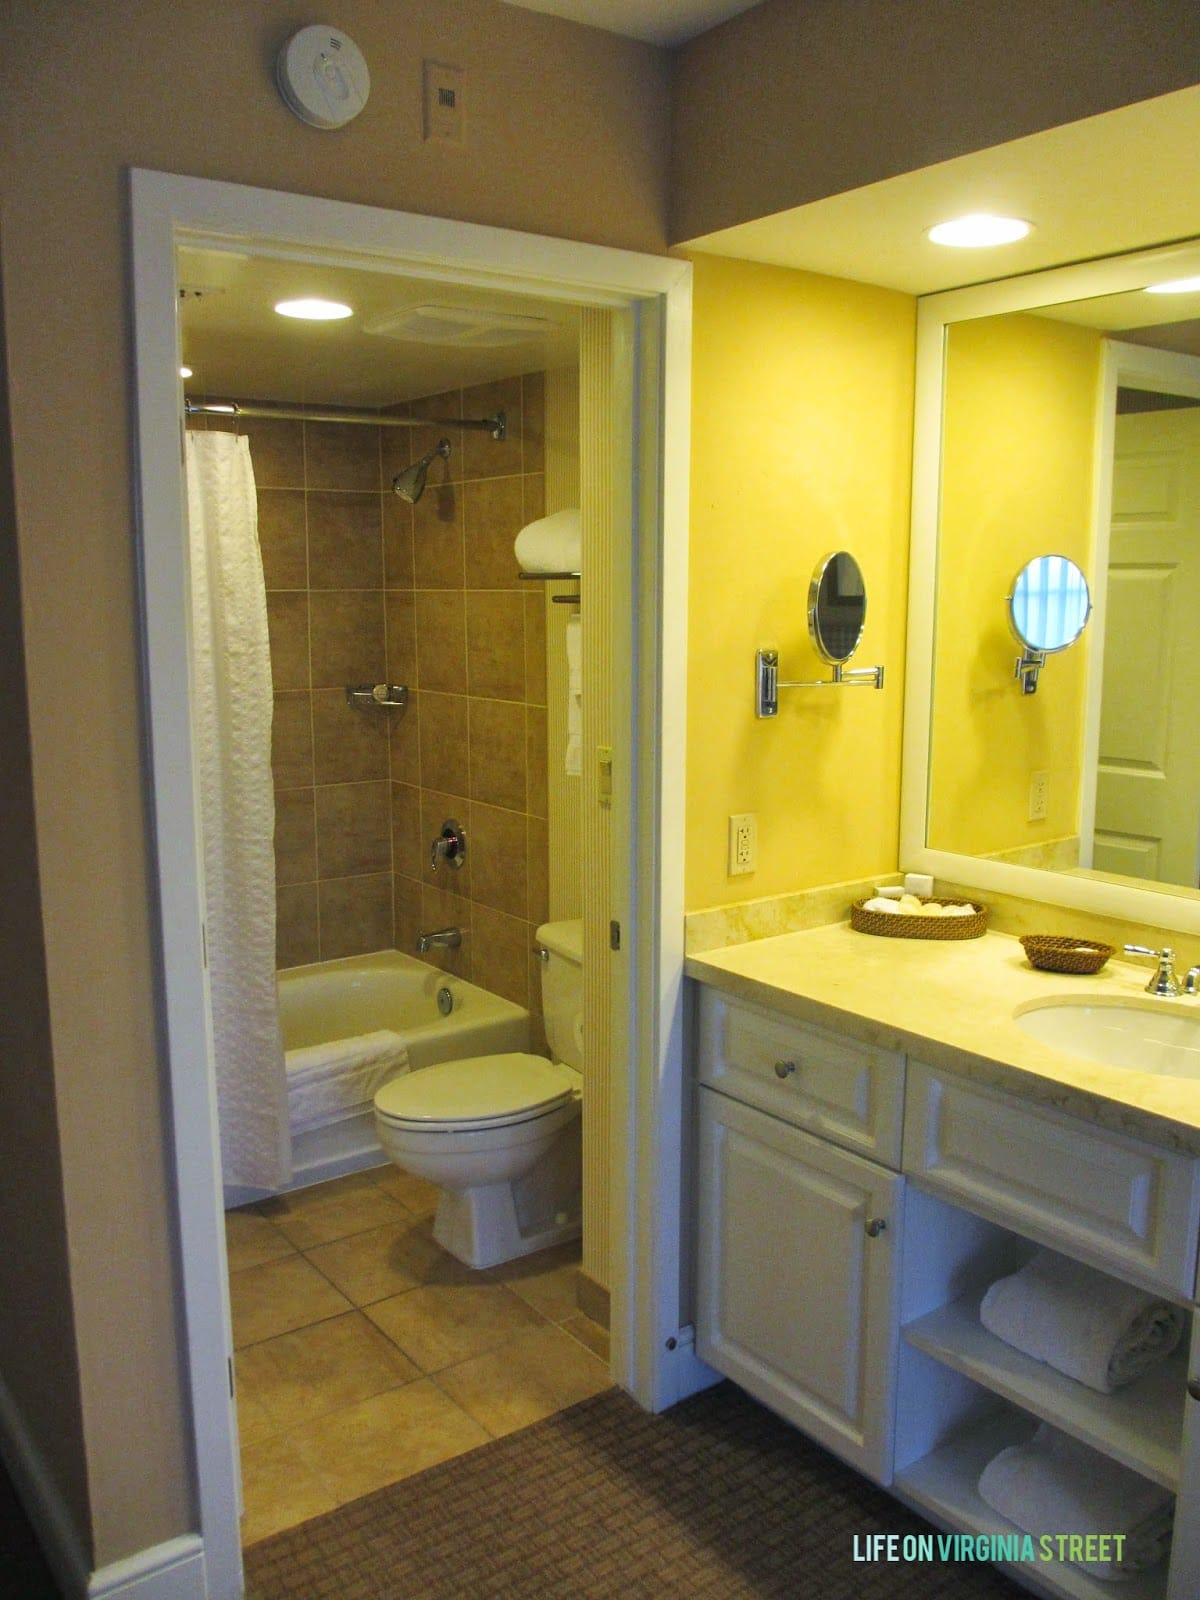 A sink and vanity plus the bathroom with a tub.